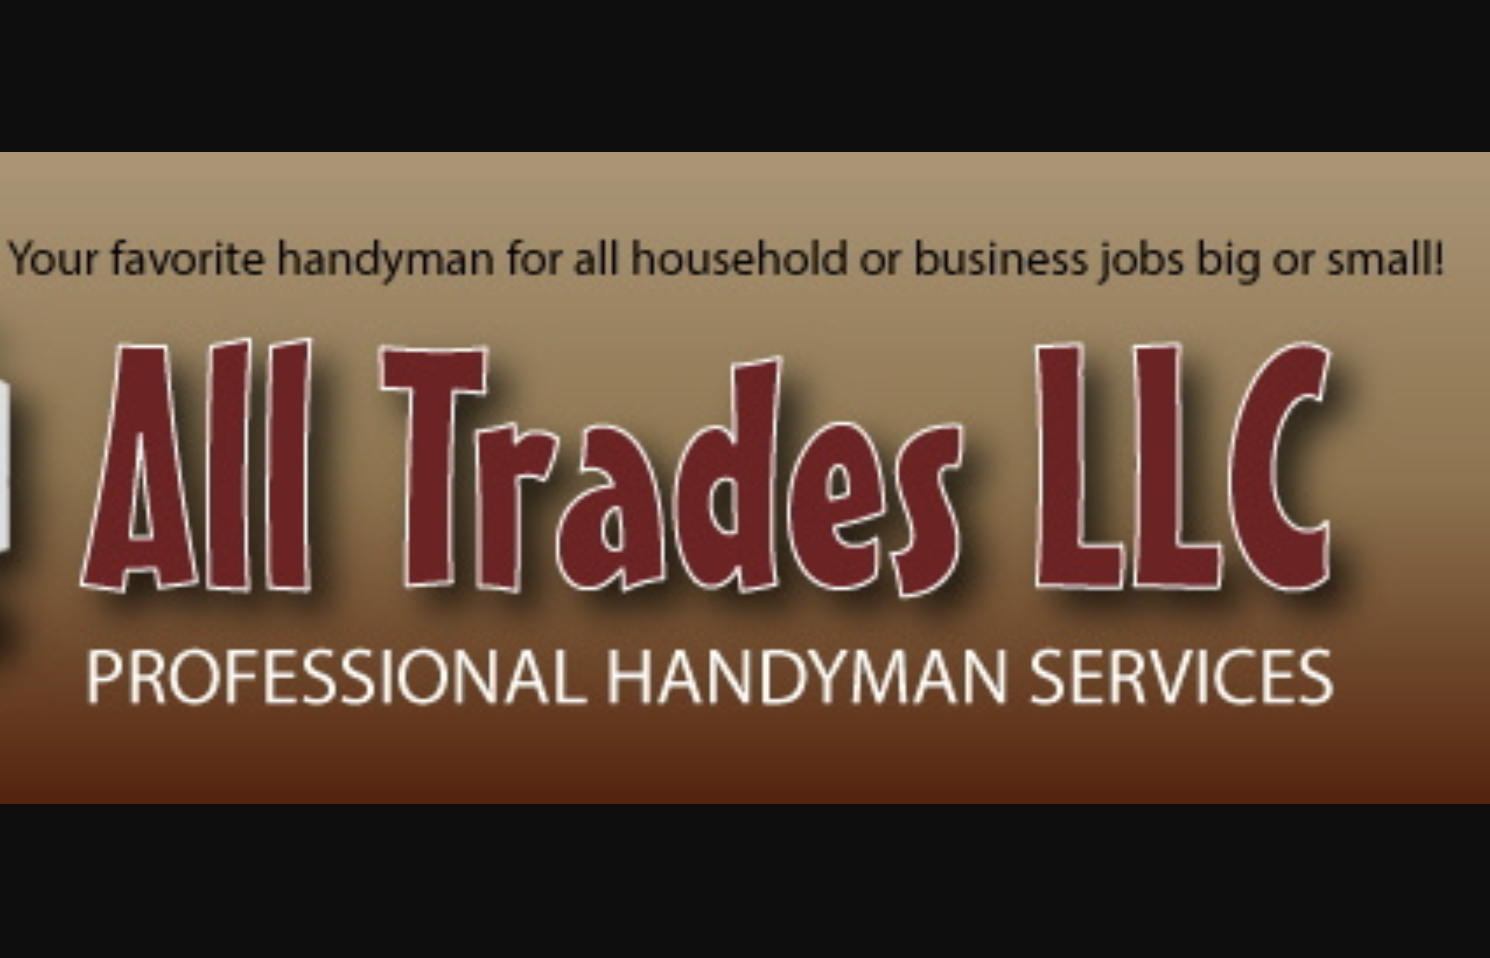 All Trades Handyman